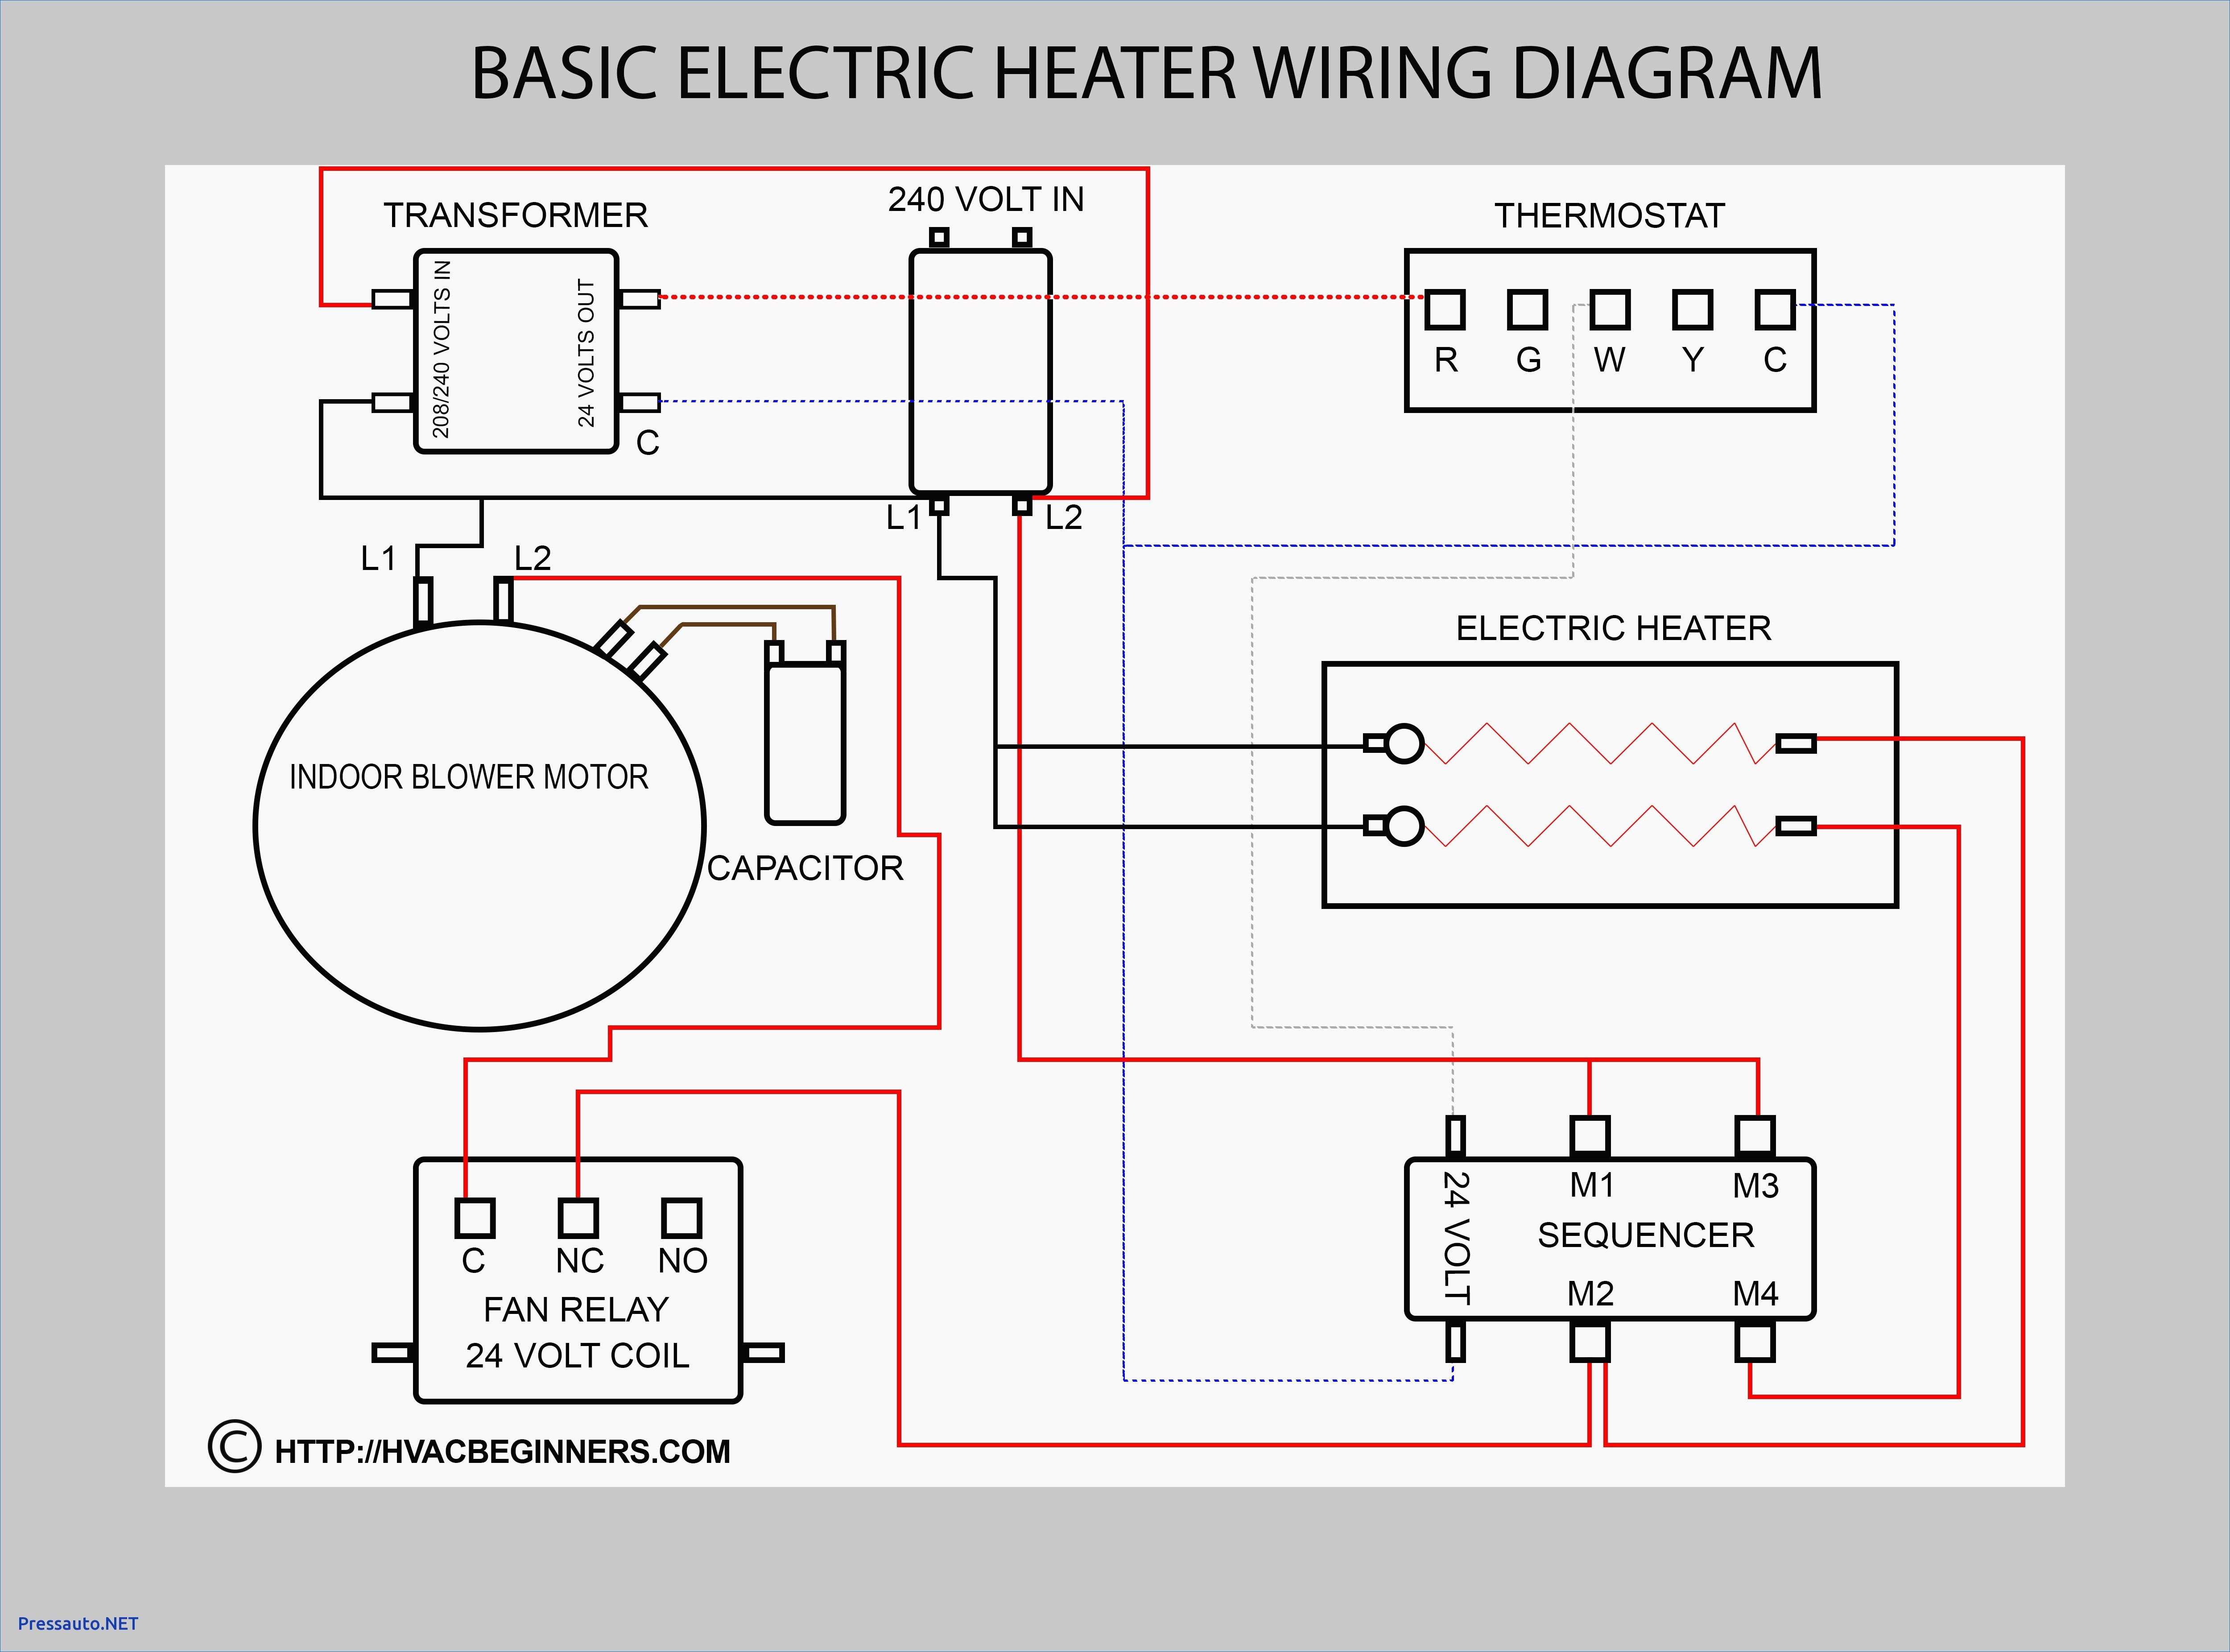 Square D Well Pump Pressure Switch Wiring Diagram Inspirational Pump - Well Pump Pressure Switch Wiring Diagram